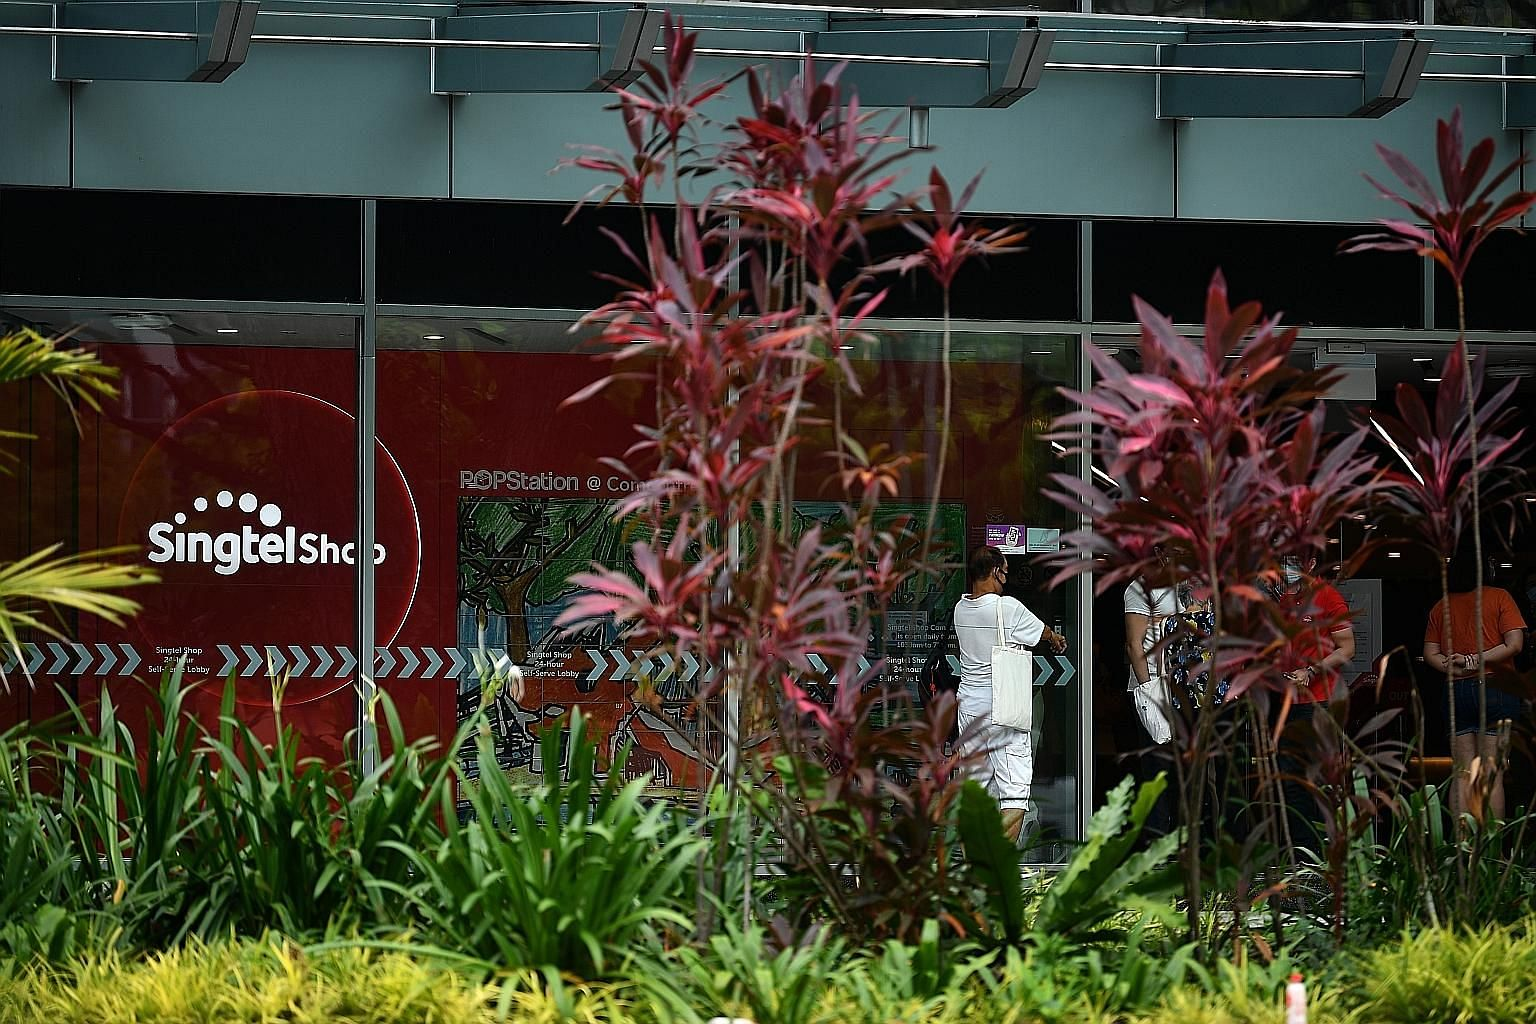 Singtel's earnings before interest, tax, depreciation and amortisation came in at $897 million for the three months to June 30, down 24.2 per cent from $1.18 billion a year earlier, owing to intense price competition across markets, a fall in roaming